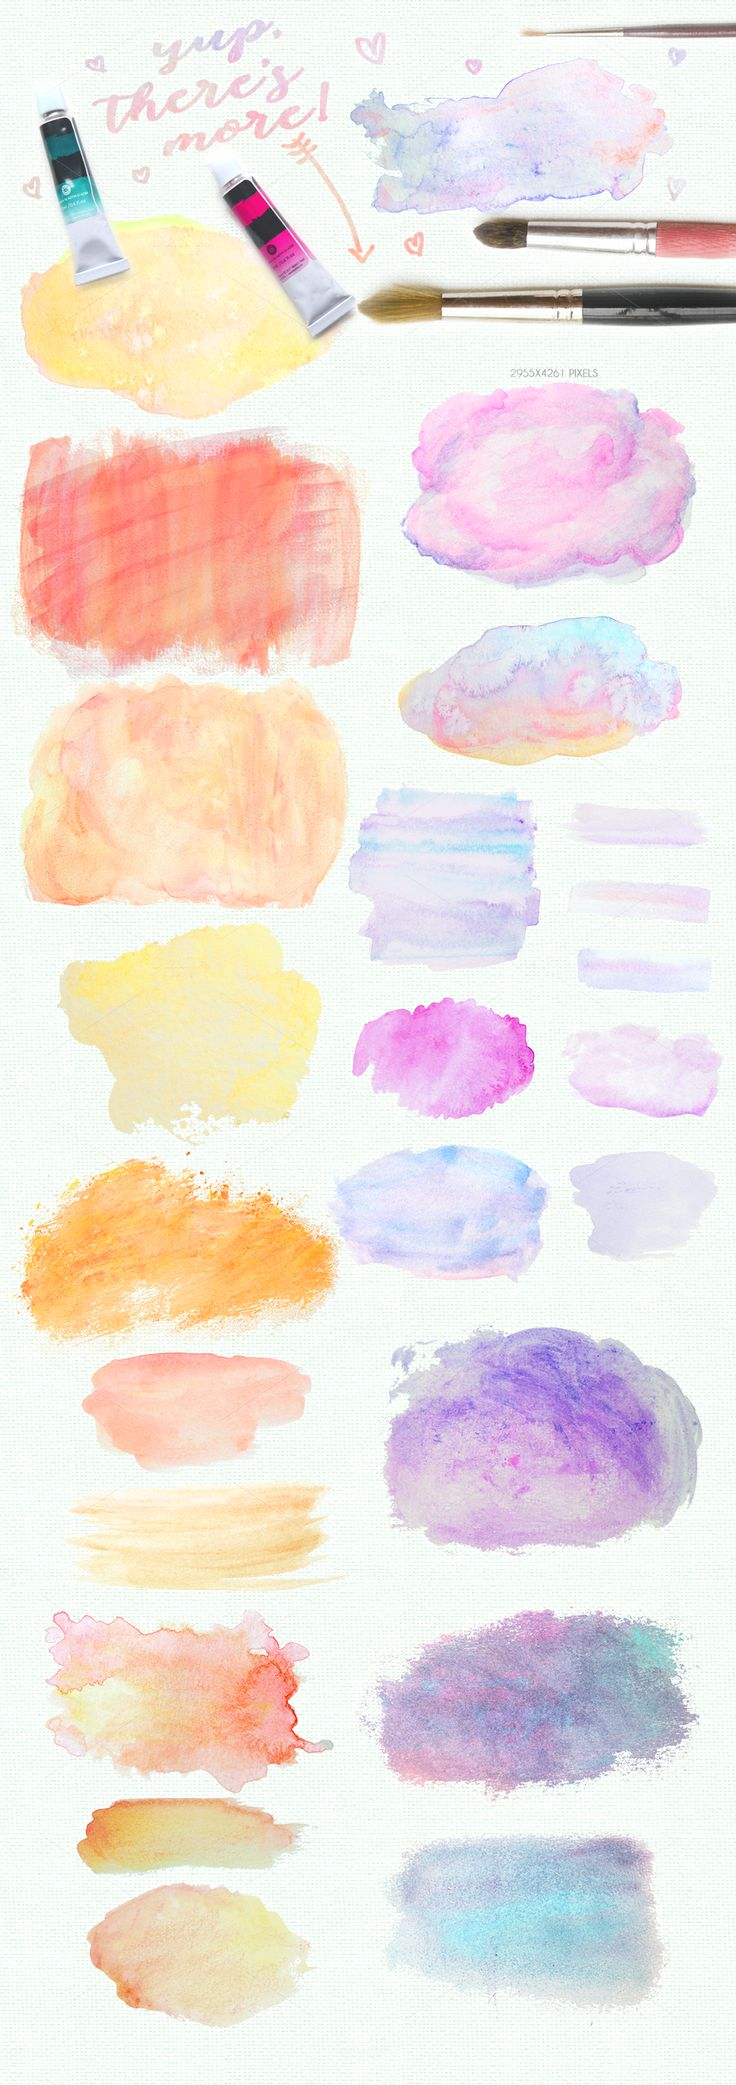 The Epic Designer Watercolor Kit on Creative Market